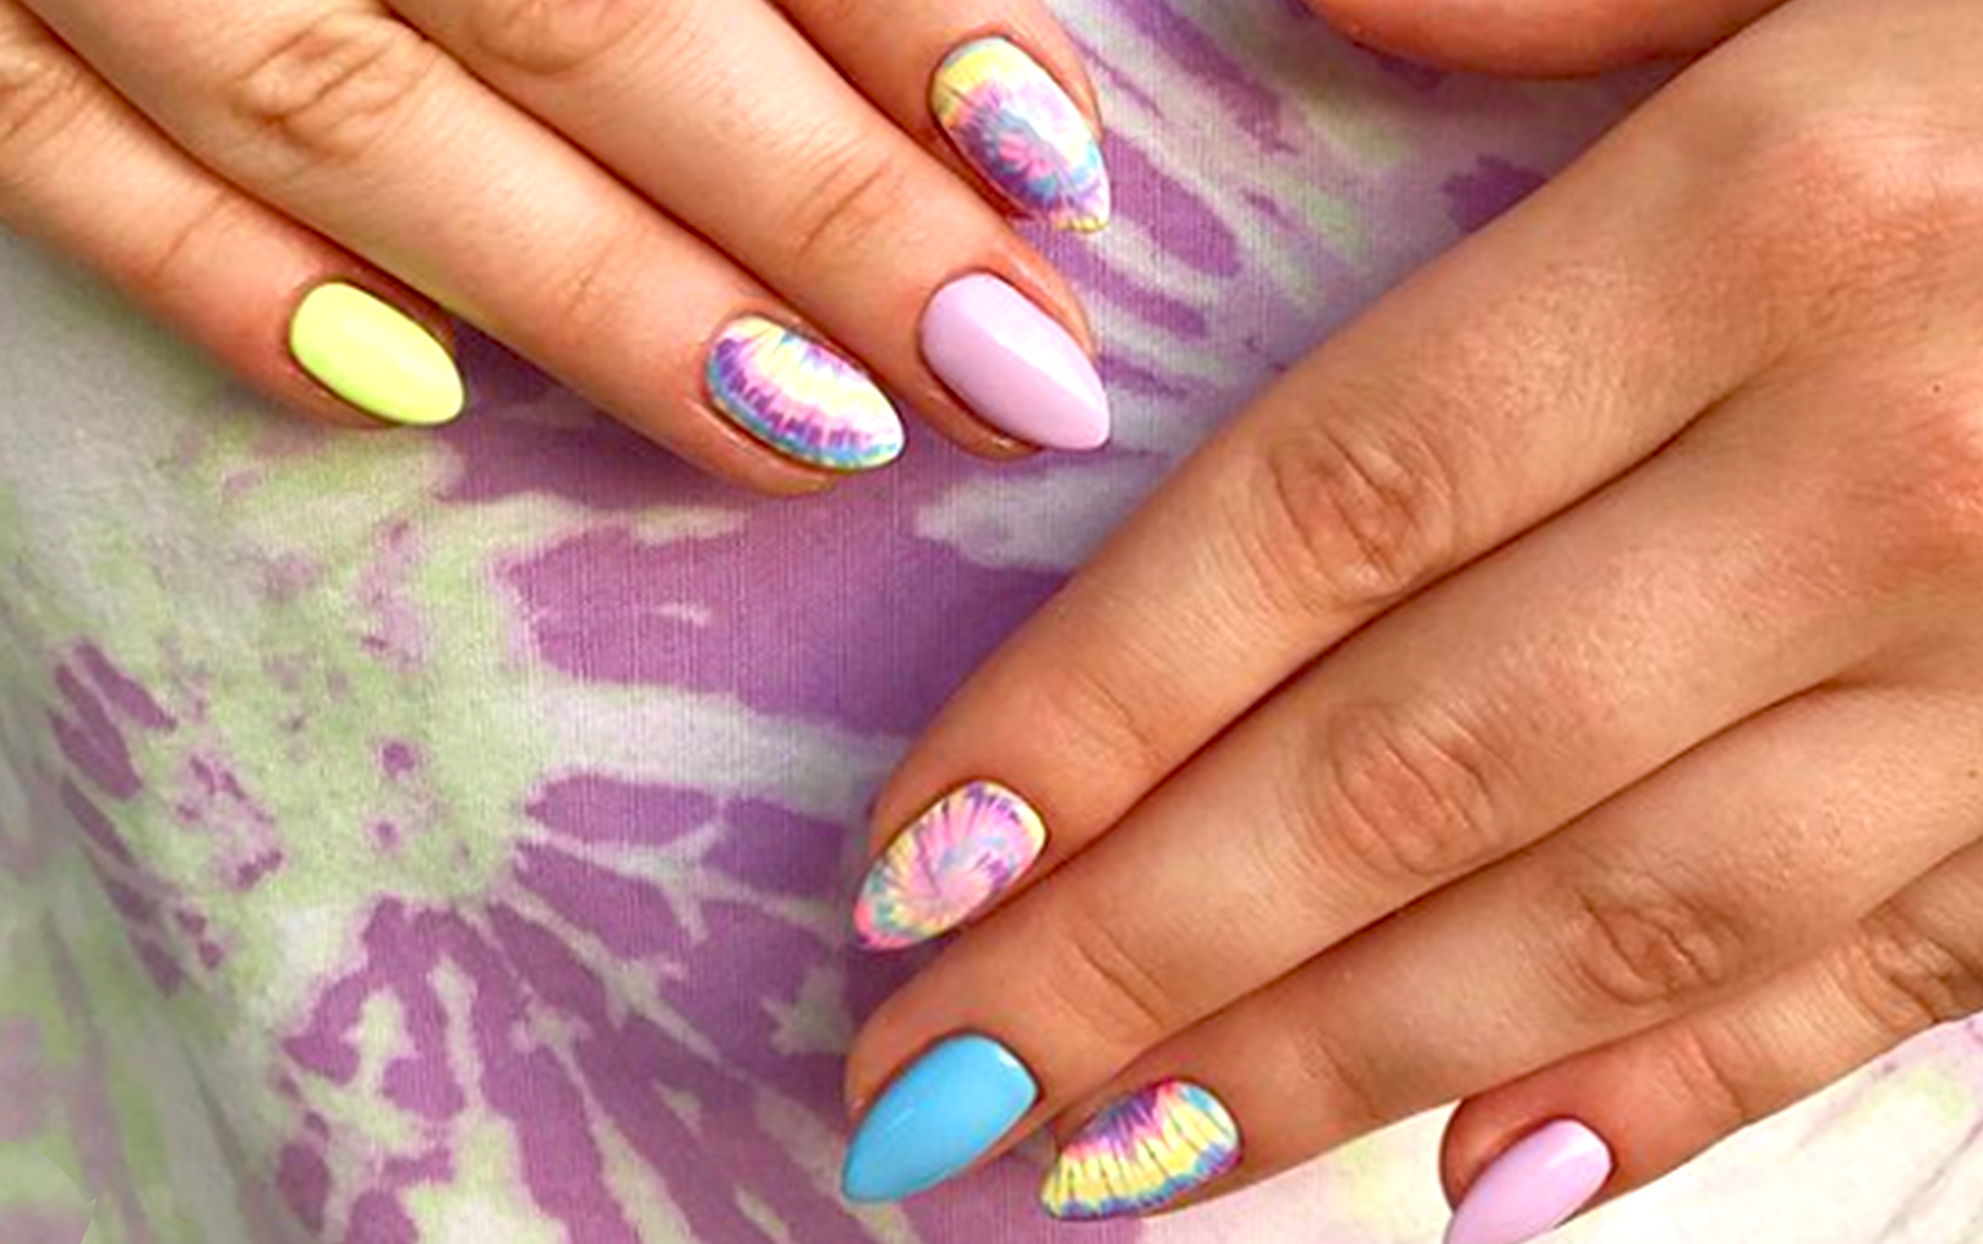 close up of a hand with tie dye nails on a tie dye fabric